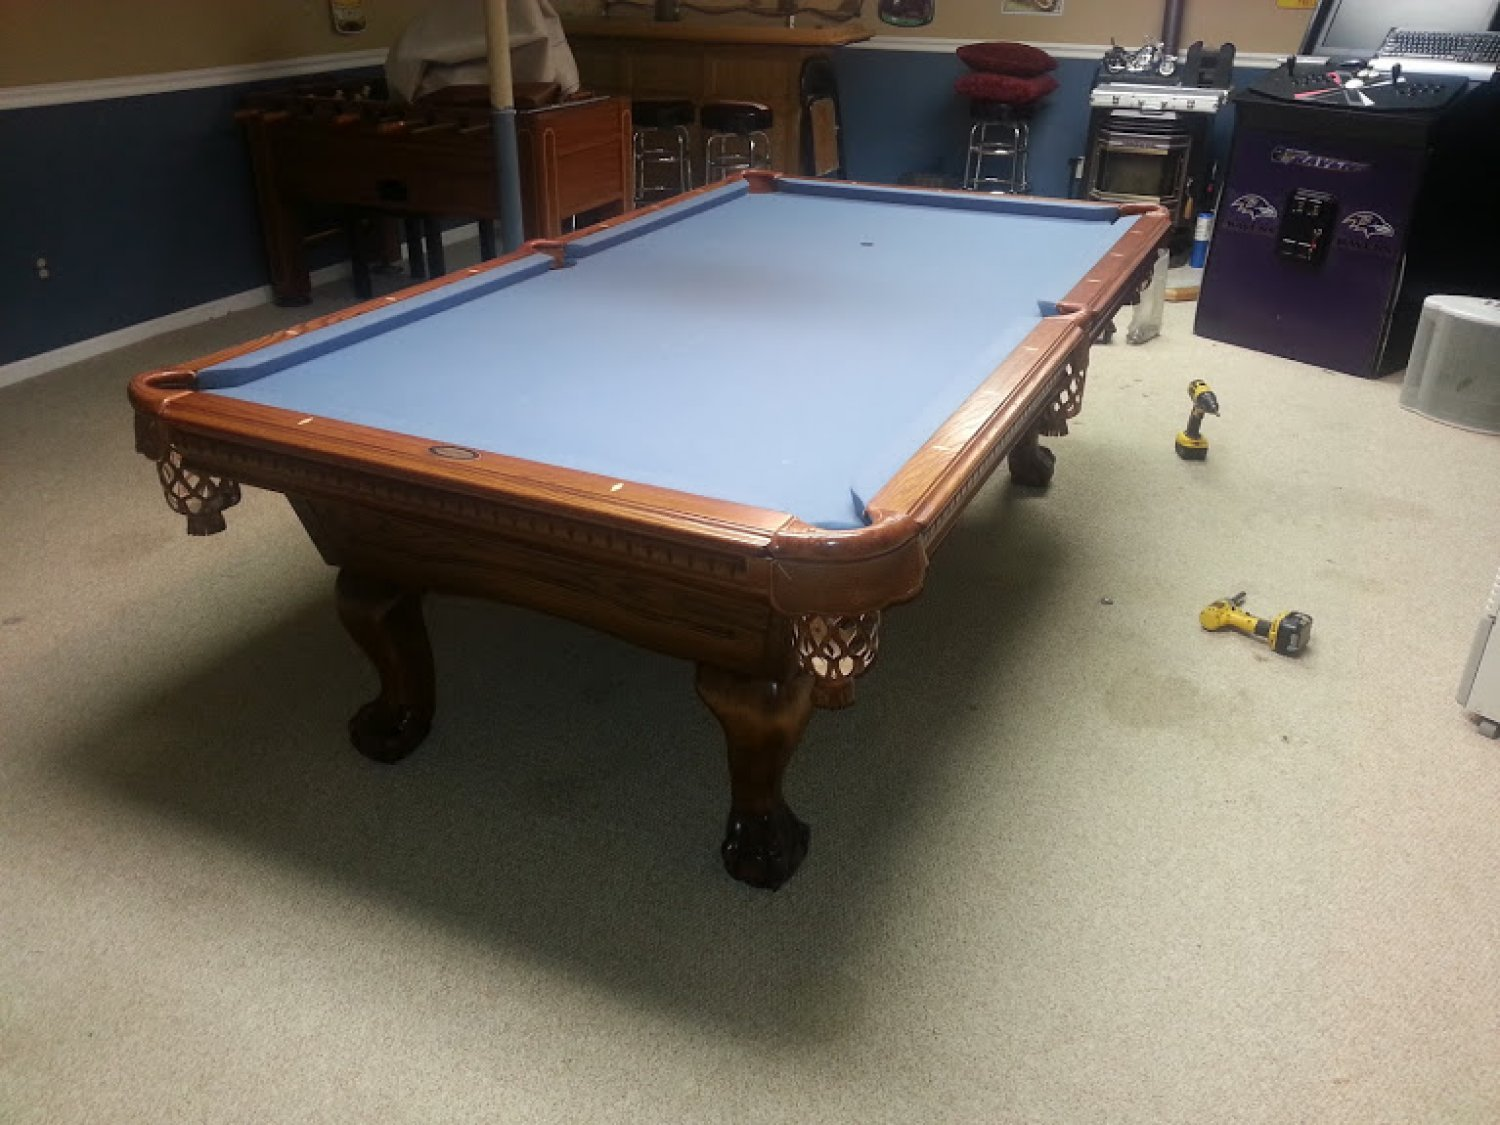 Beau Pool Table Refelt